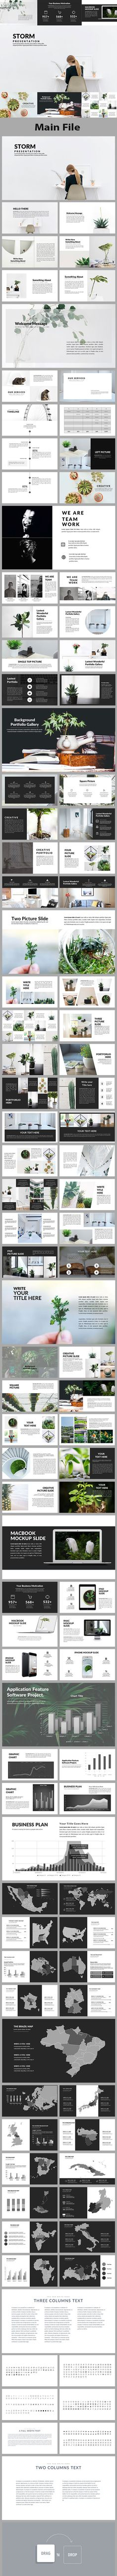 Storm - Creative #PowerPoint Template - Creative PowerPoint #Templates Download here: https://graphicriver.net/item/storm-creative-powerpoint-template/19488282?ref=alena994